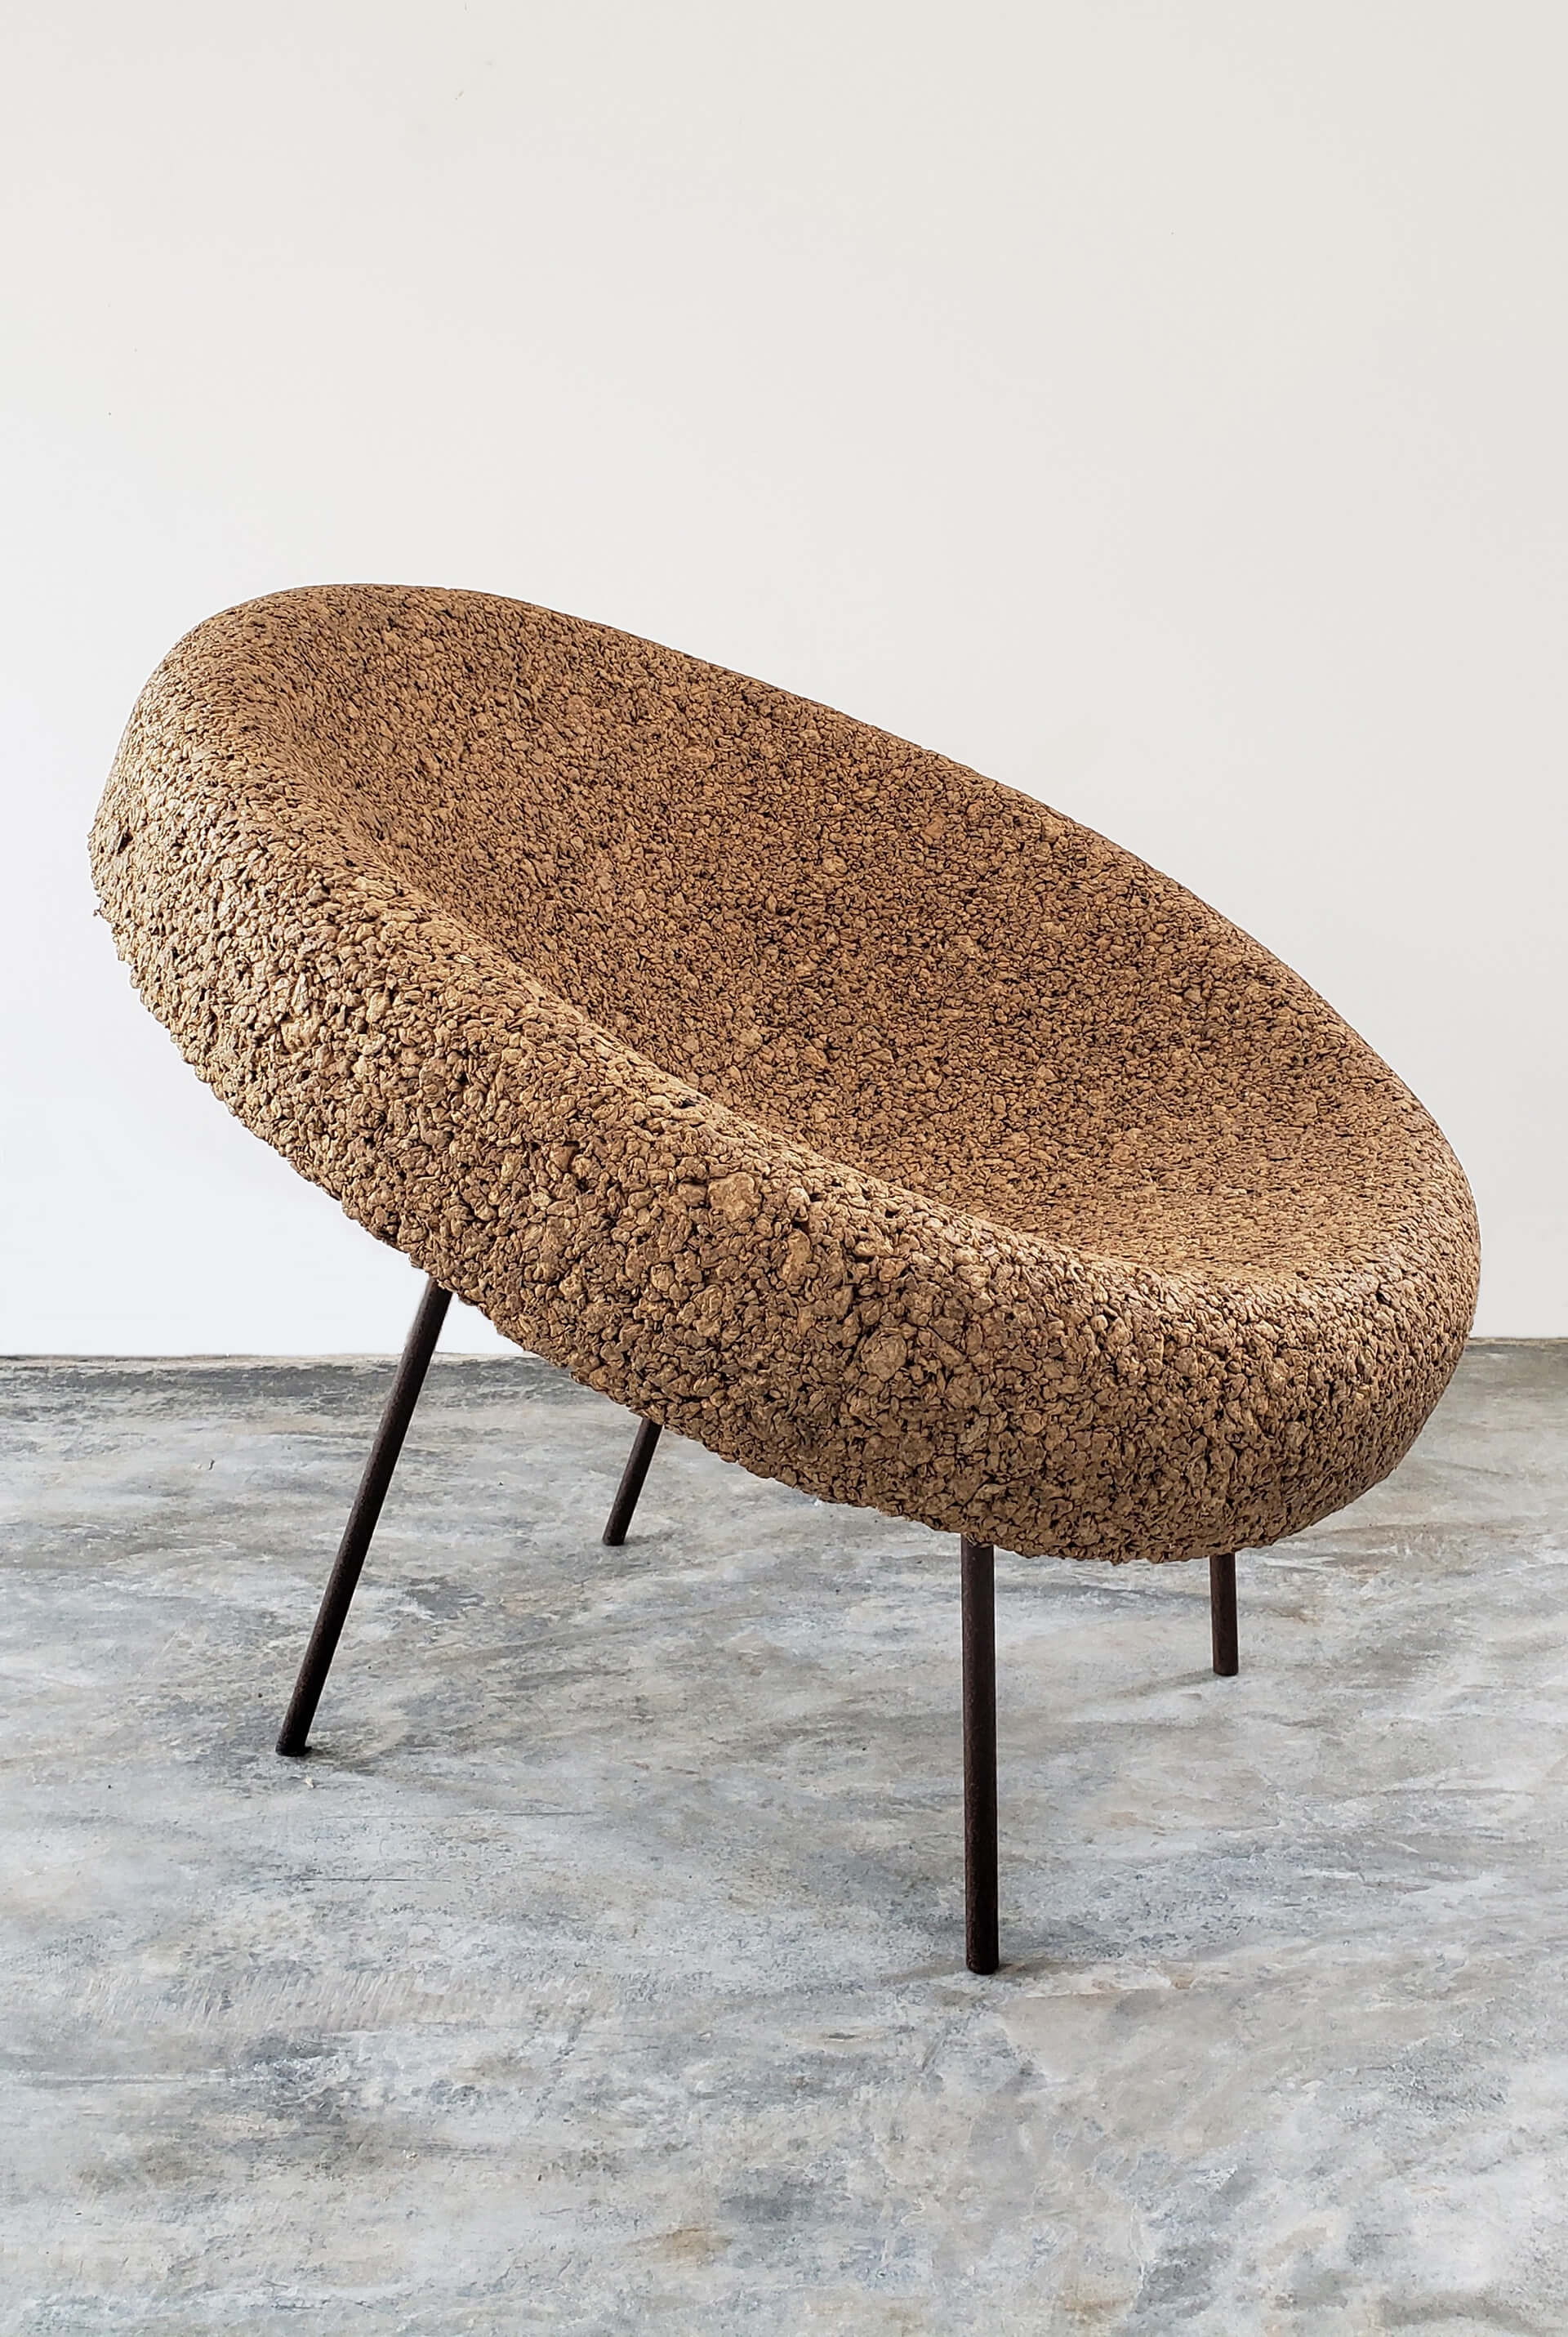 Poltrona Atalho (Shortcut Armchair)| Made in Brazil: Curated by Campana Brothers | STIR X Script |STIRworld